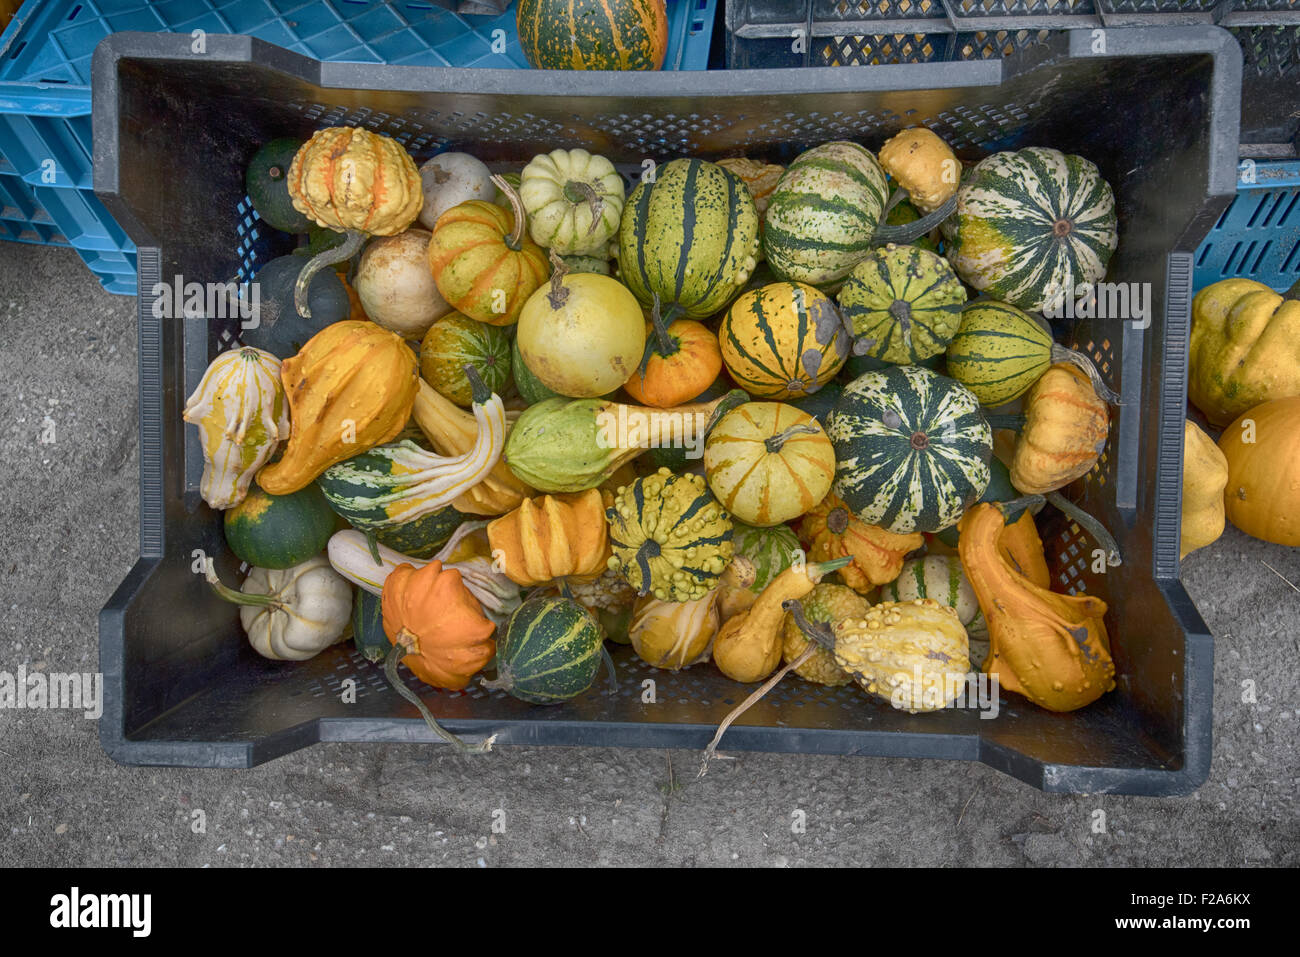 pumpkins and squash for sale - Stock Image